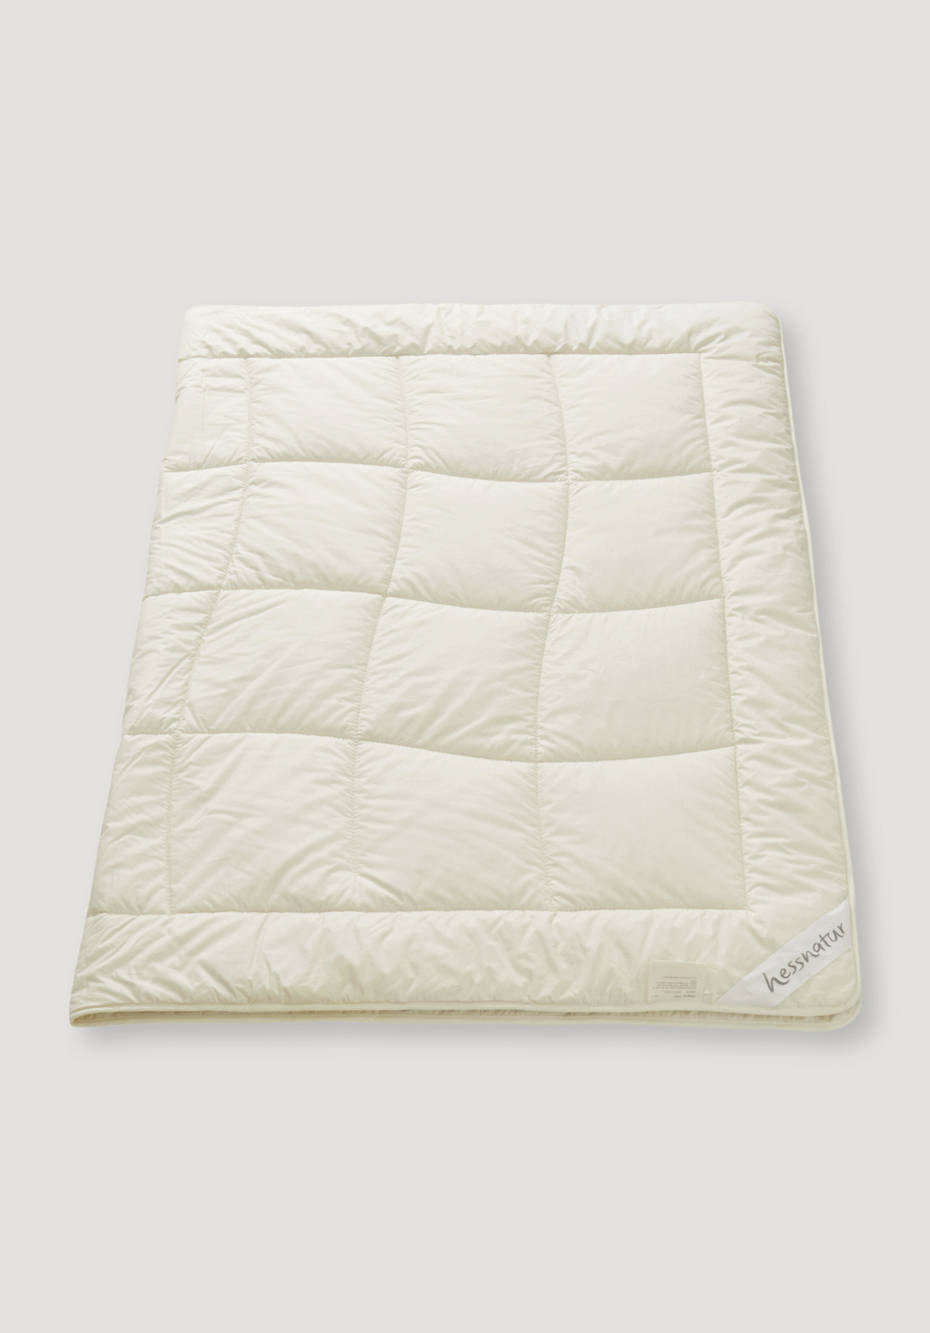 Summer blanket made from pure organic cotton